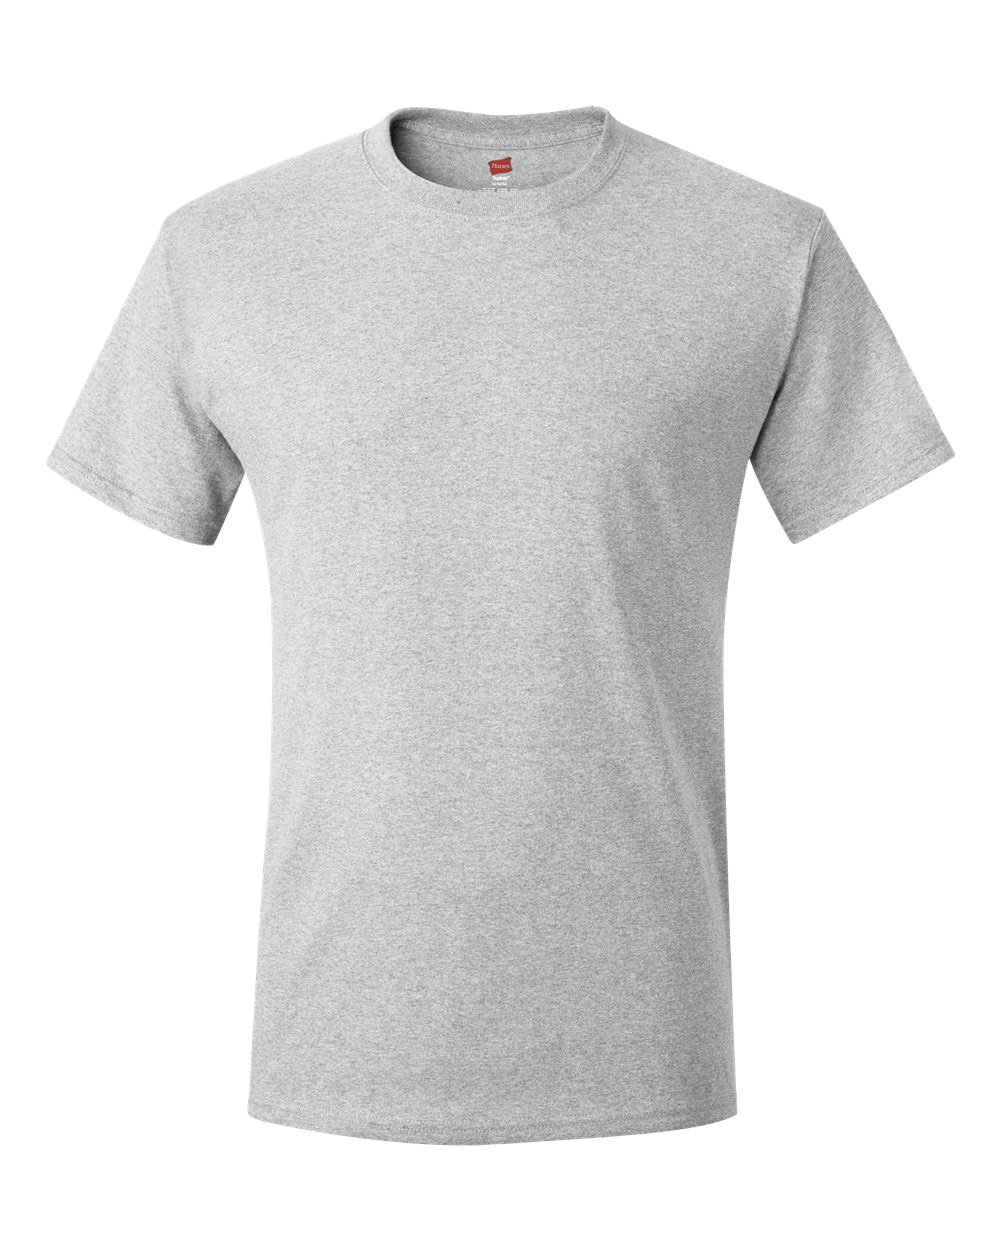 Hanes Youth 6.1 oz. Tagless® ComfortSoft® T-Shirt